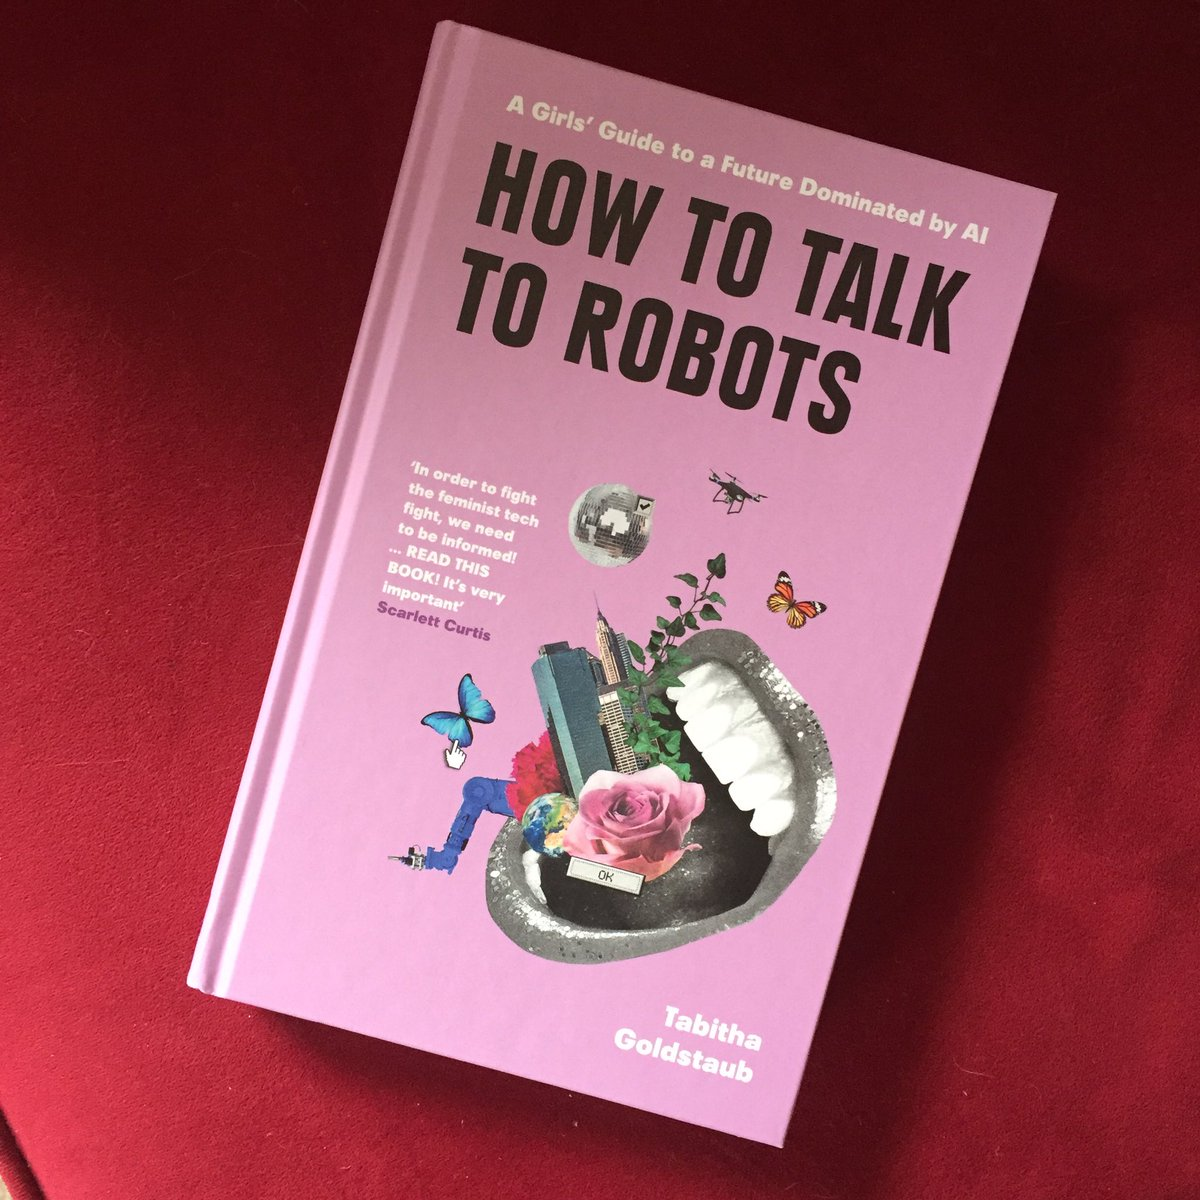 @tabithagold first book 'How to Talk to Robots' just landed on my doormat, bang on time for my rainy Hallowe'en weekend away to #Brixham 🤗🤖🎃Hopefully not too spooky a read! #ai #agi #feministtech #techforgood #genderdatagap #gendertechgap